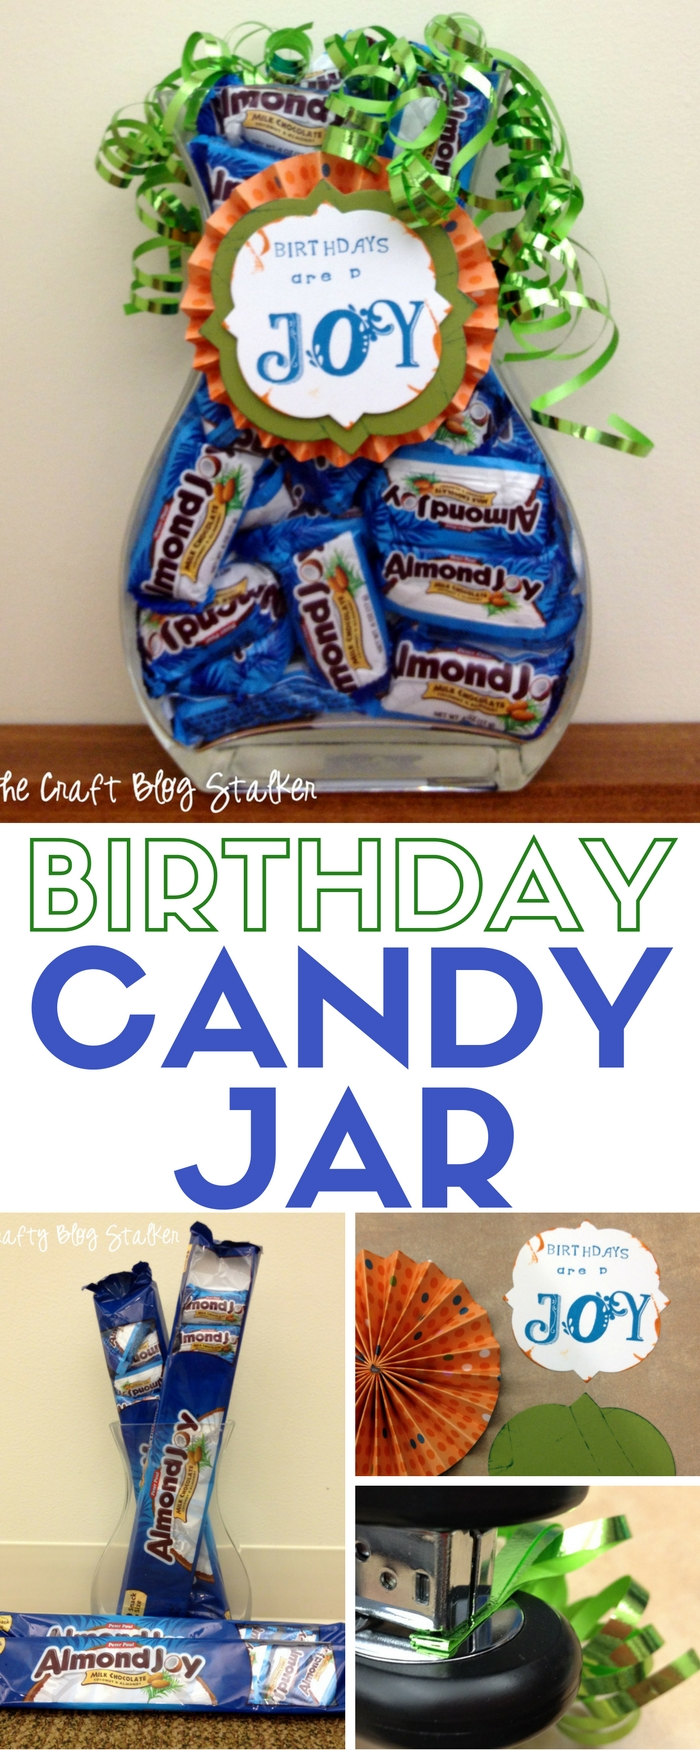 Surprise someone you love with a Birthday Candy Jar on their special day. An easy DIY craft tutorial idea for a handmade gift they will love!